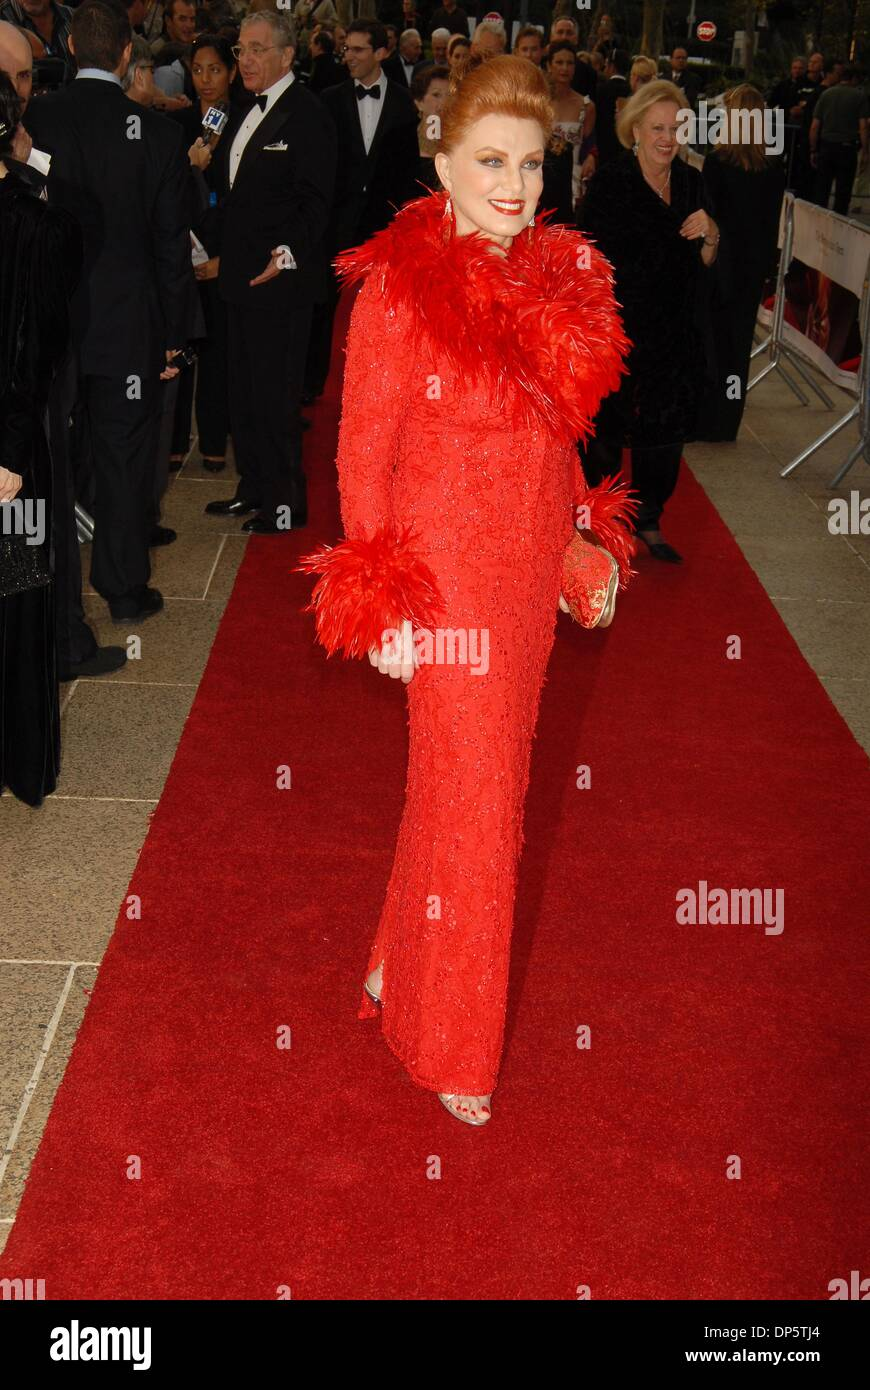 Sep 25, 2006; New York, NY, USA; GEORGETTE MOSBACHER at the 'Madame Butterfly' Metropolitan Opera Opening. Mandatory Stock Photo